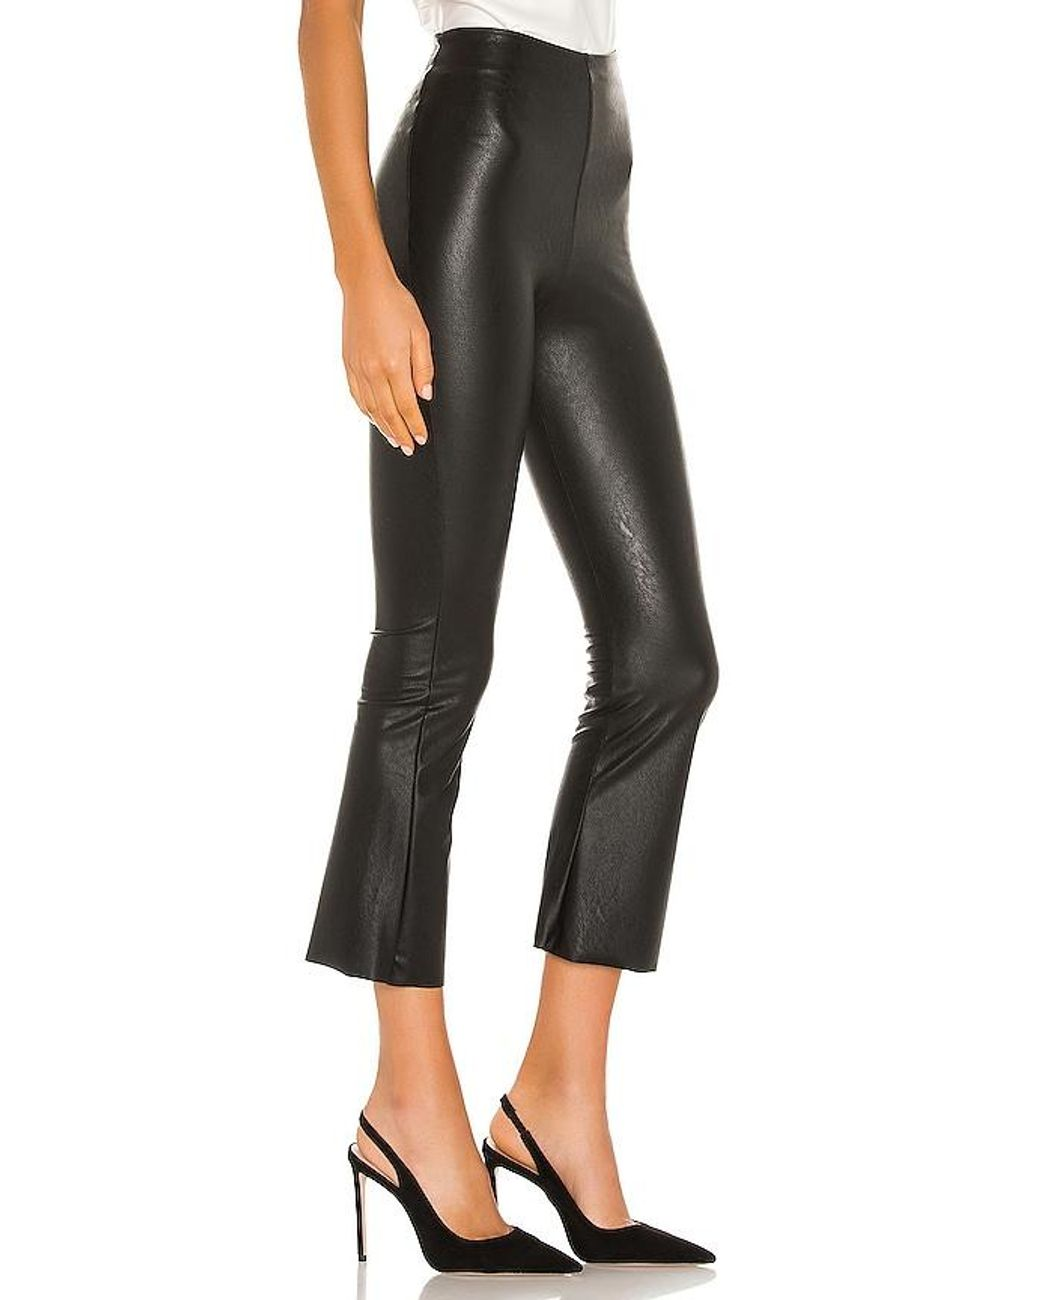 Commando Faux Leather Cropped Flare Pant in Black   Lyst